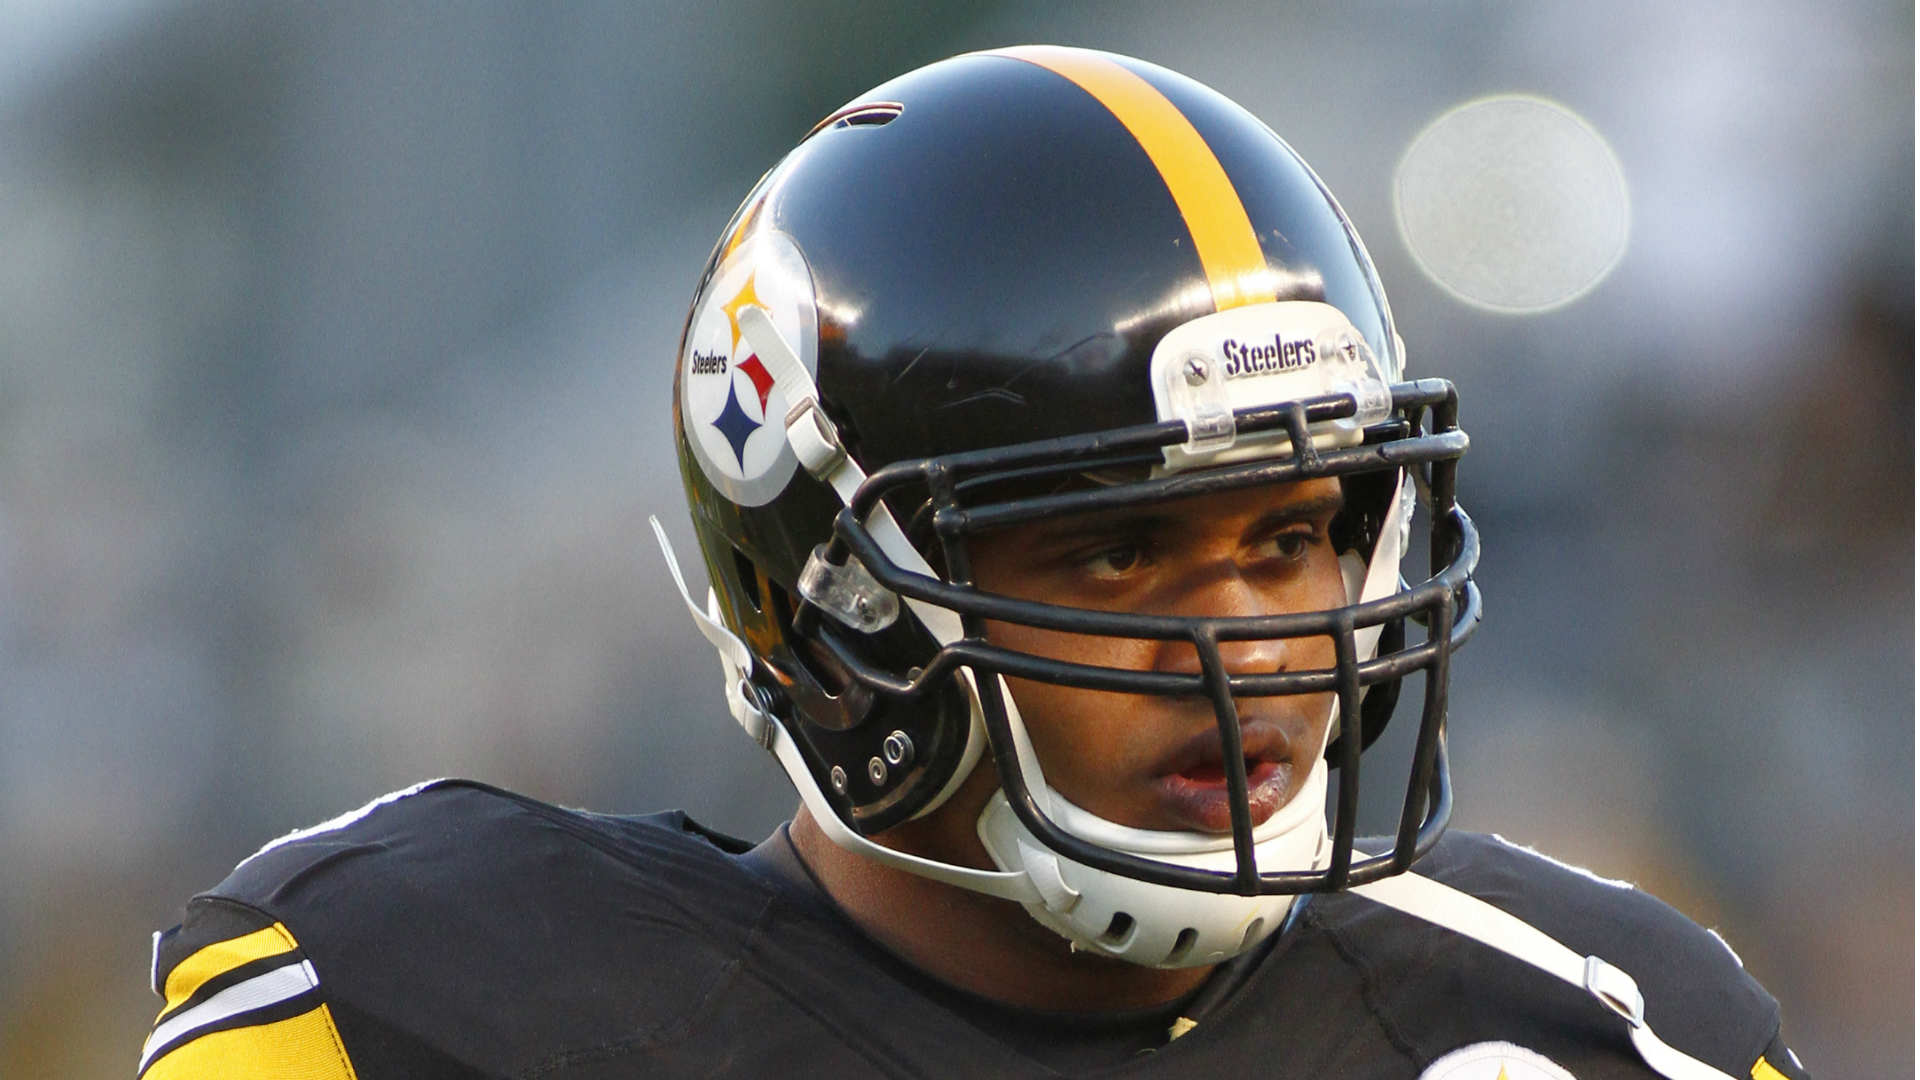 Steelers' Maurkice Pouncey calls Lions' D-line play 'some dirty sh—'